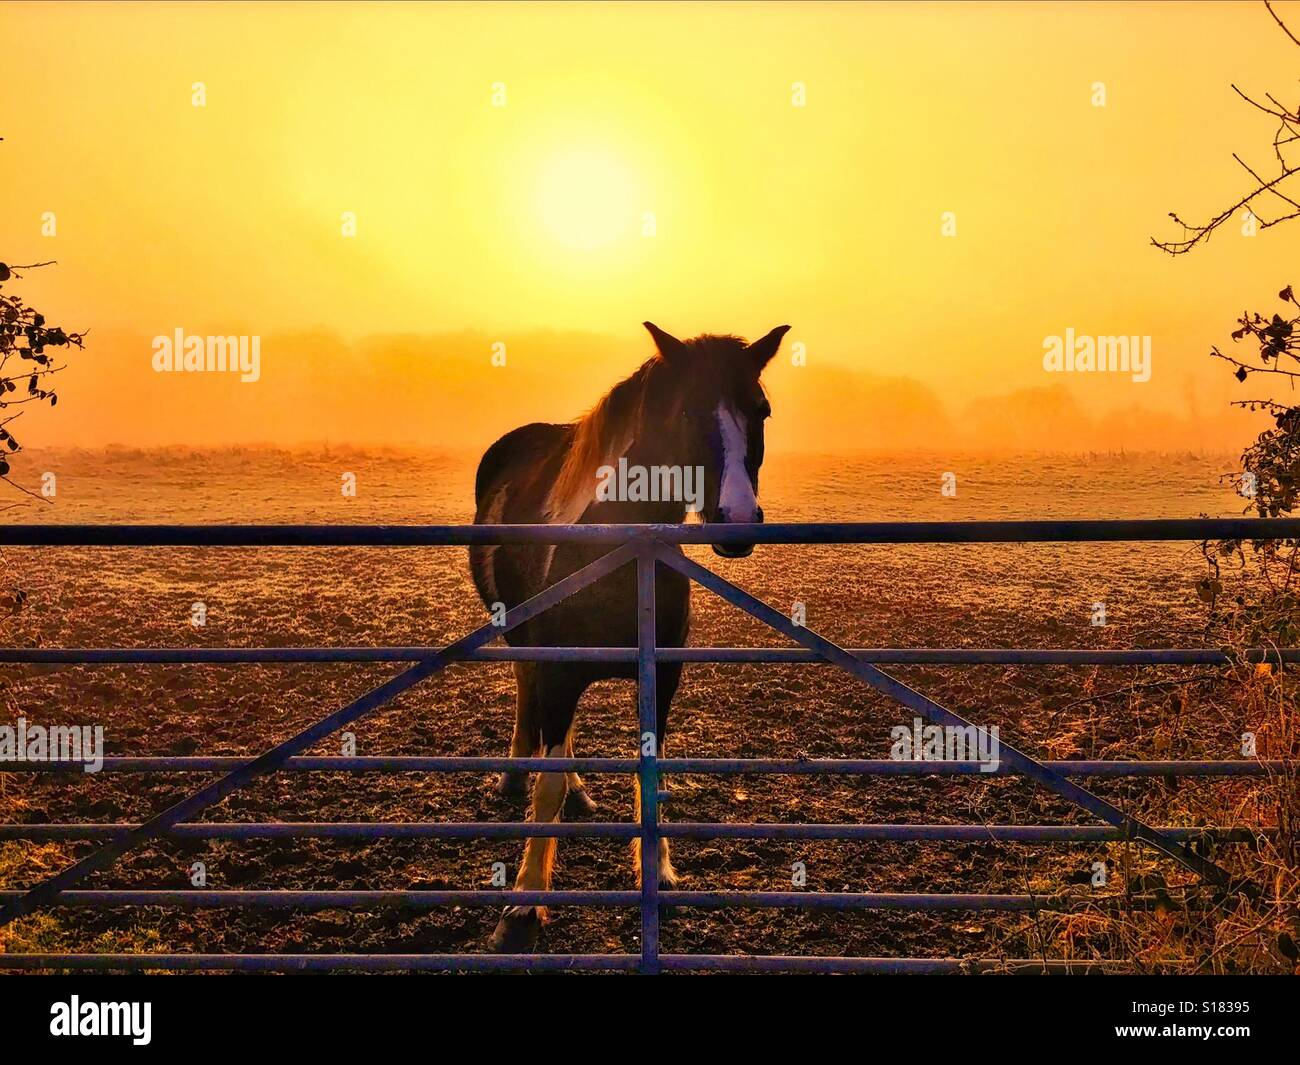 Horse in the morning light - Stock Image